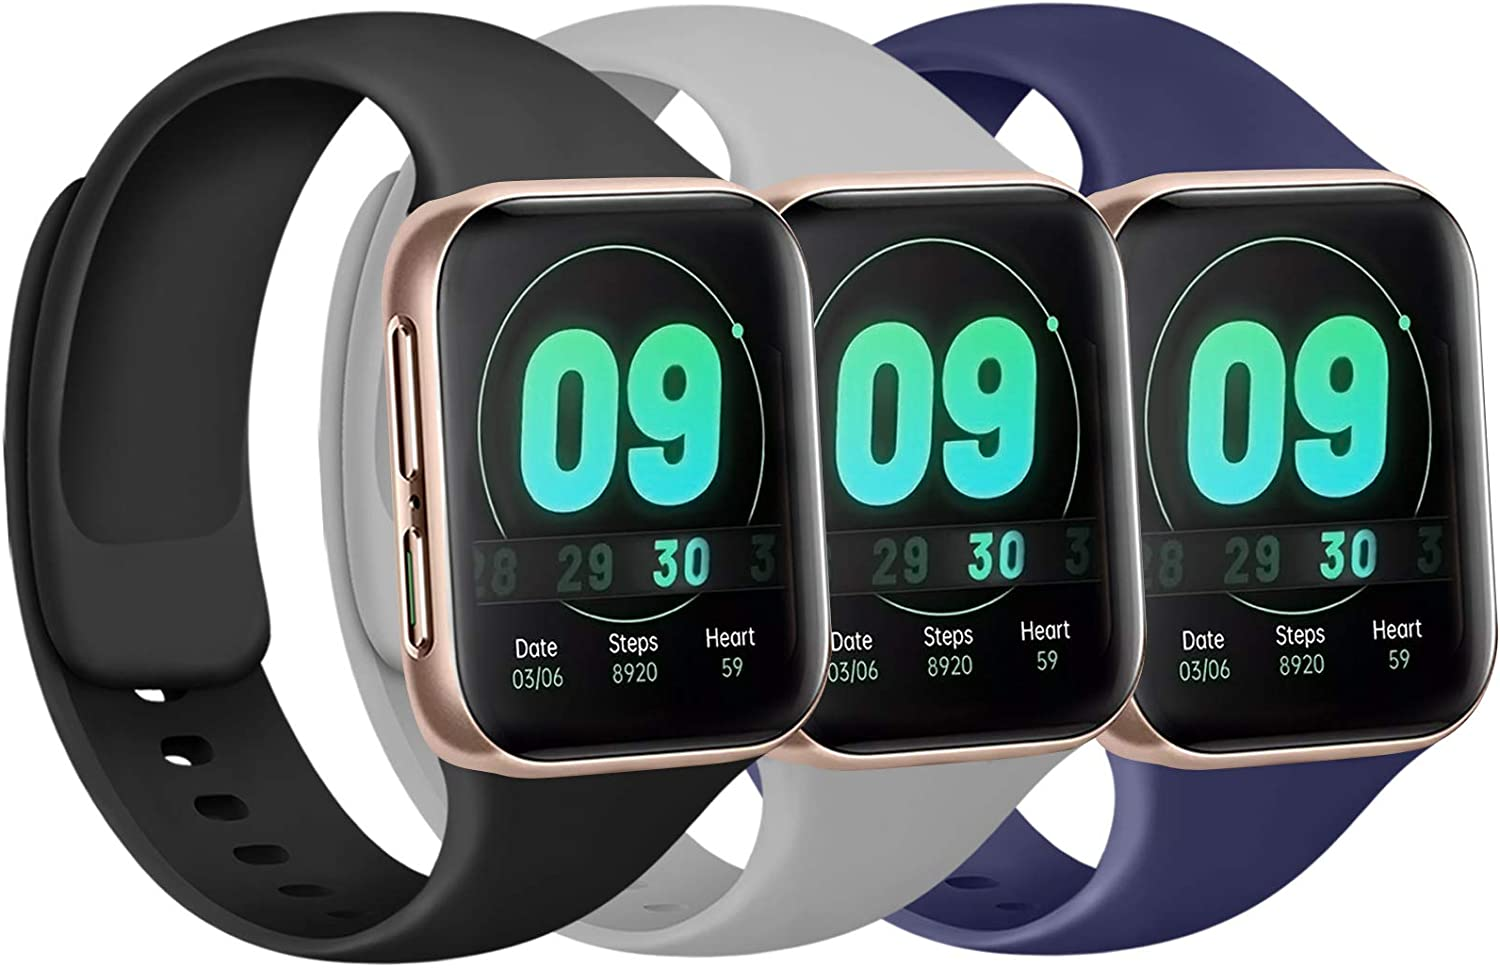 [3 Pack] Silicone Bands Compatible with Apple Watch Bands 38mm 40mm 42mm 44mm, Soft Wristbands Compatible with iWatch Bands (Black/Navy Blue/Gray, 38mm/40mm-S/M)